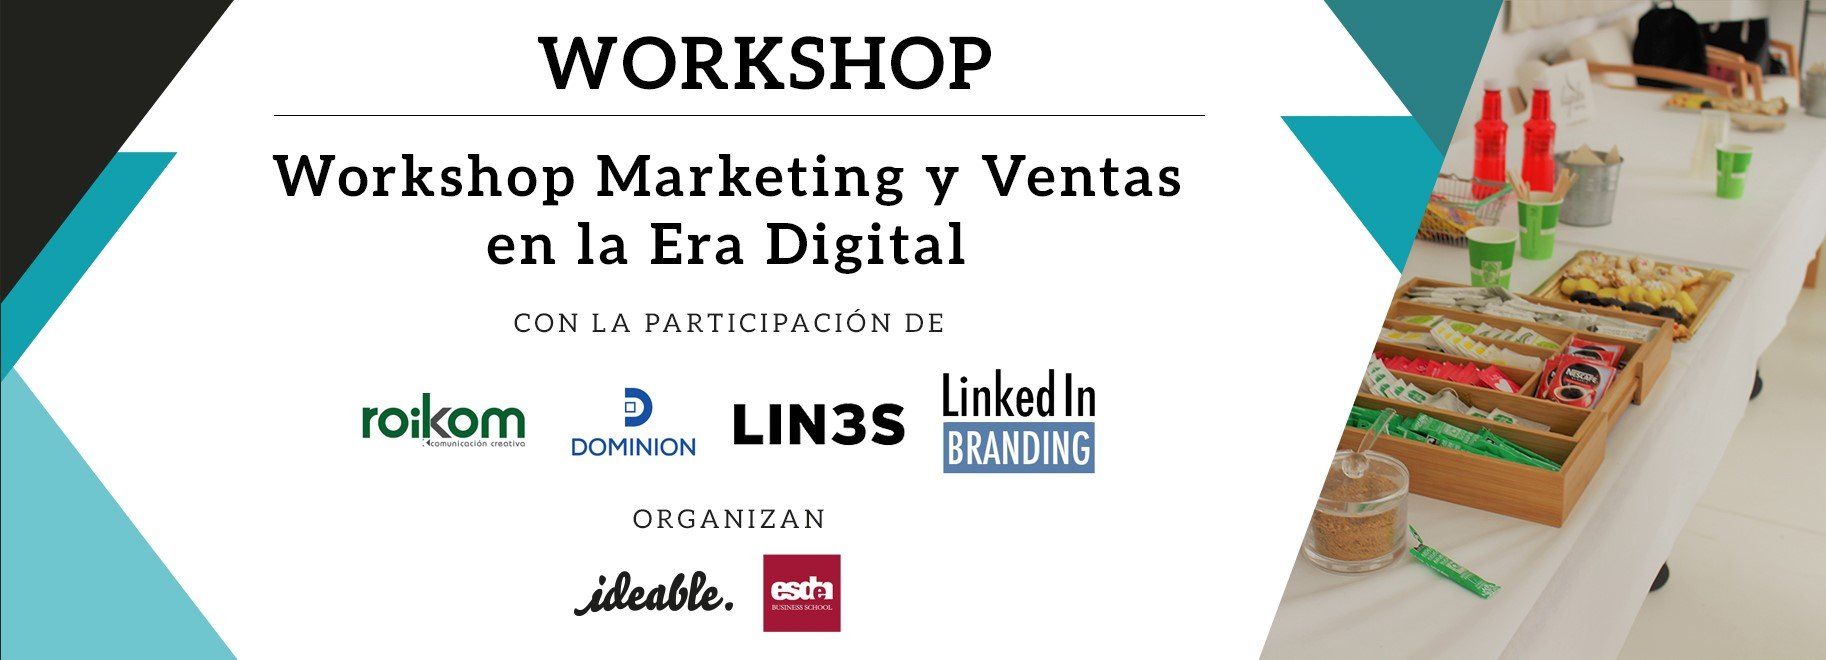 workshop marketing y ventas